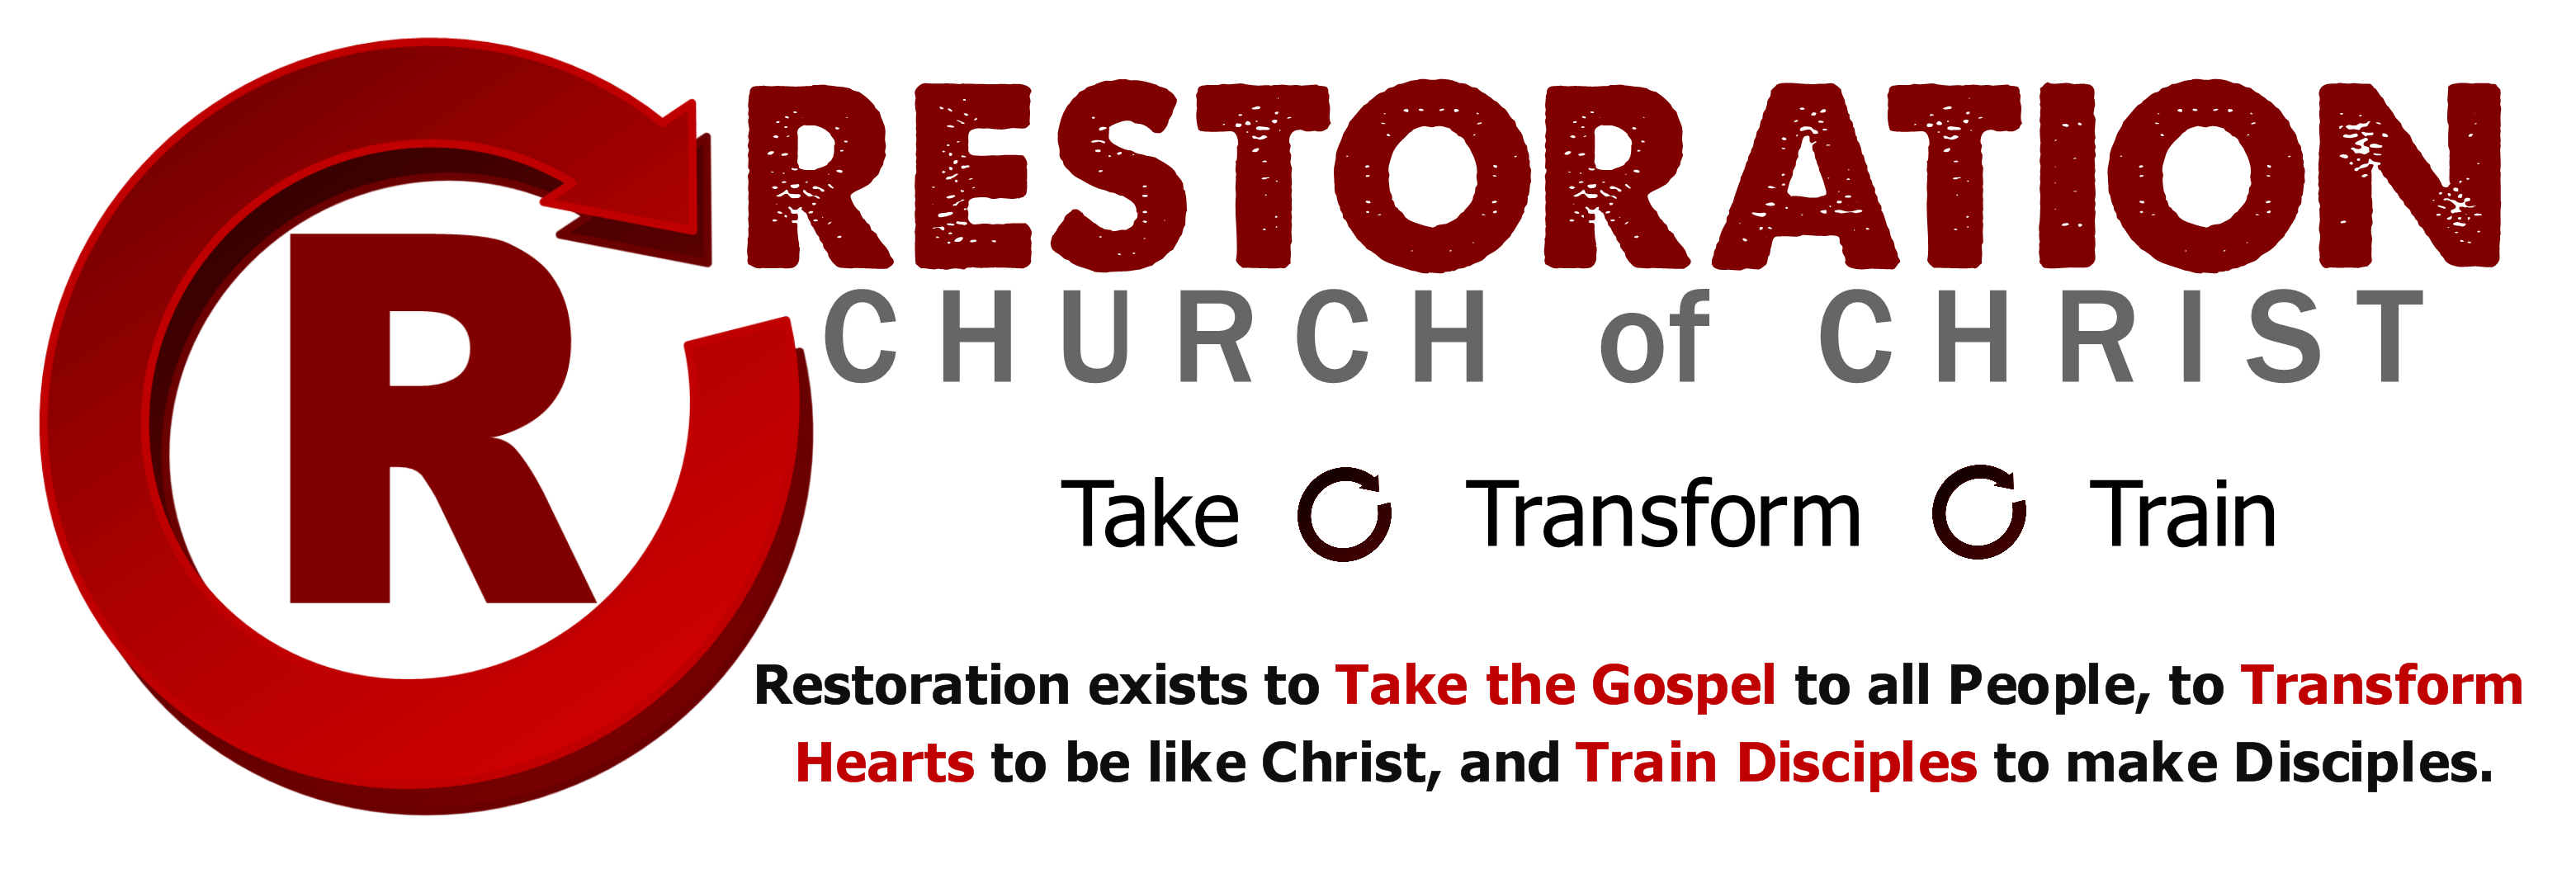 Restoration Church of Christ